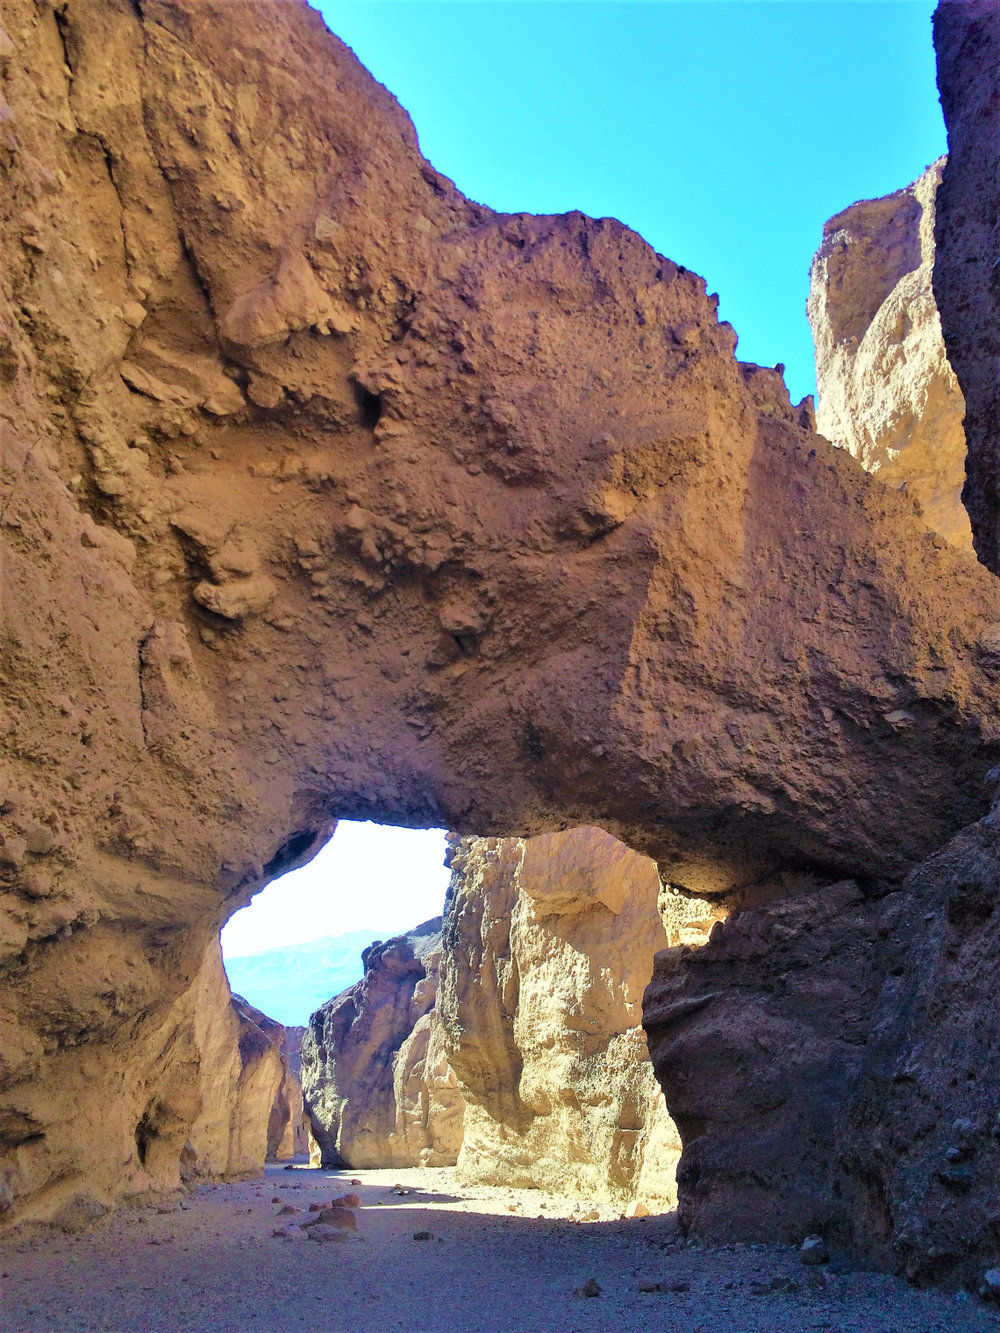 Natural Bridge. A good precursor to what I am going to see on a much grander scale in Arches NP.